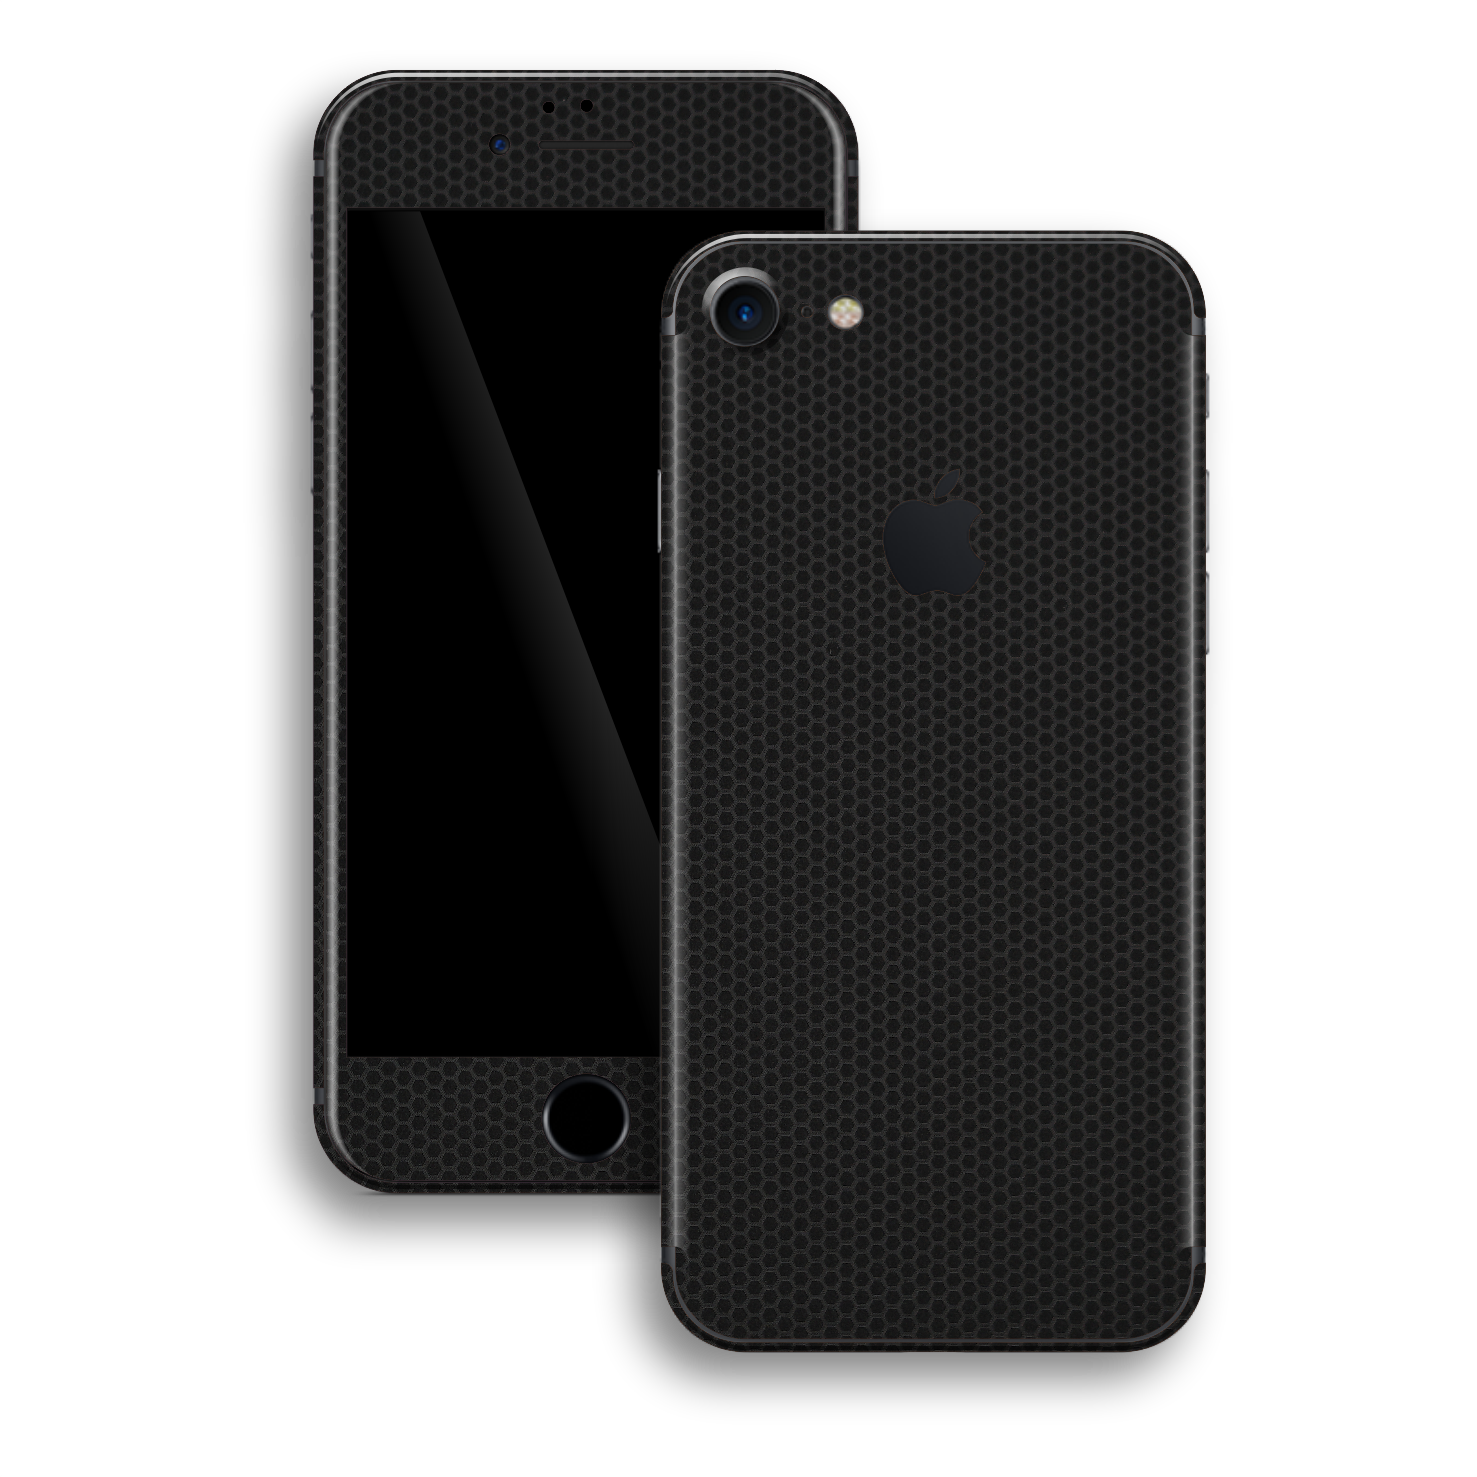 iPhone 8 Black Matrix Textured Skin Wrap Decal 3M by EasySkinz